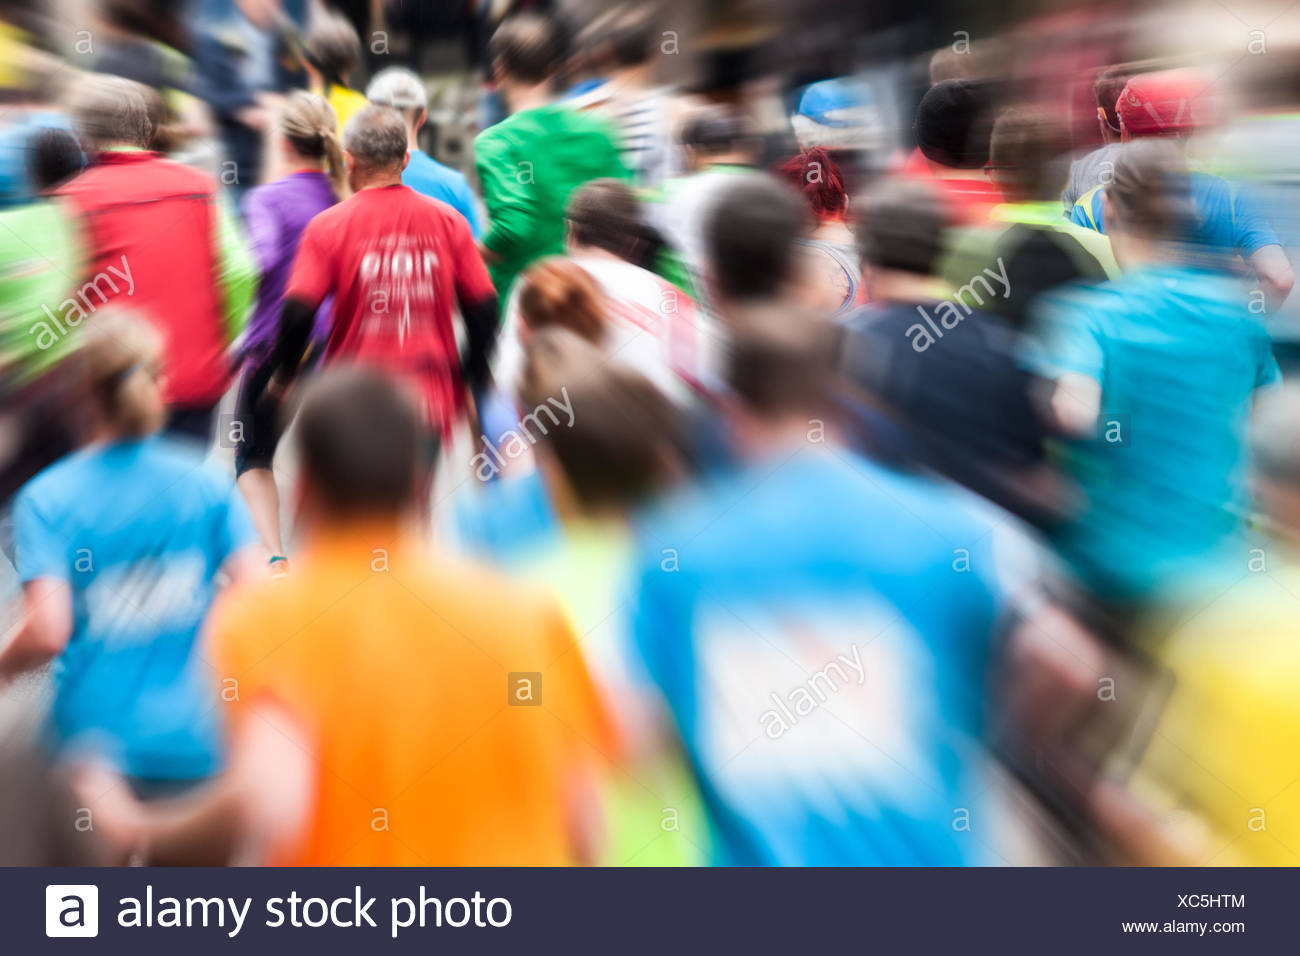 Runners - Stock Image